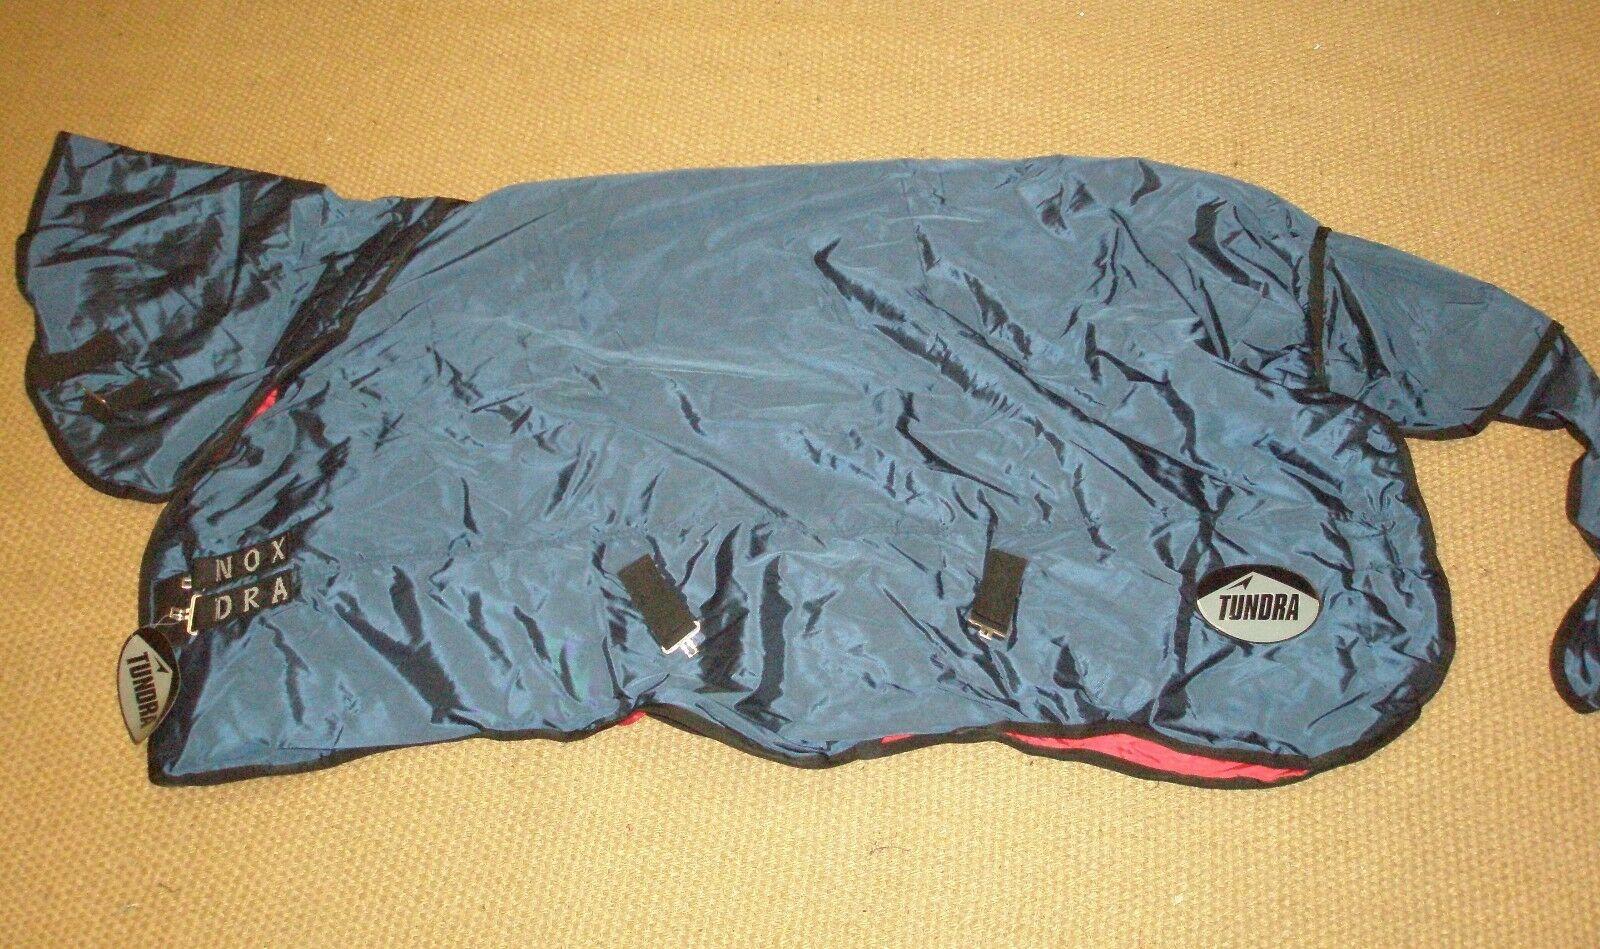 Equenox Tundra Medium Weight Turnout Rug Navy And Red - Size 5'9